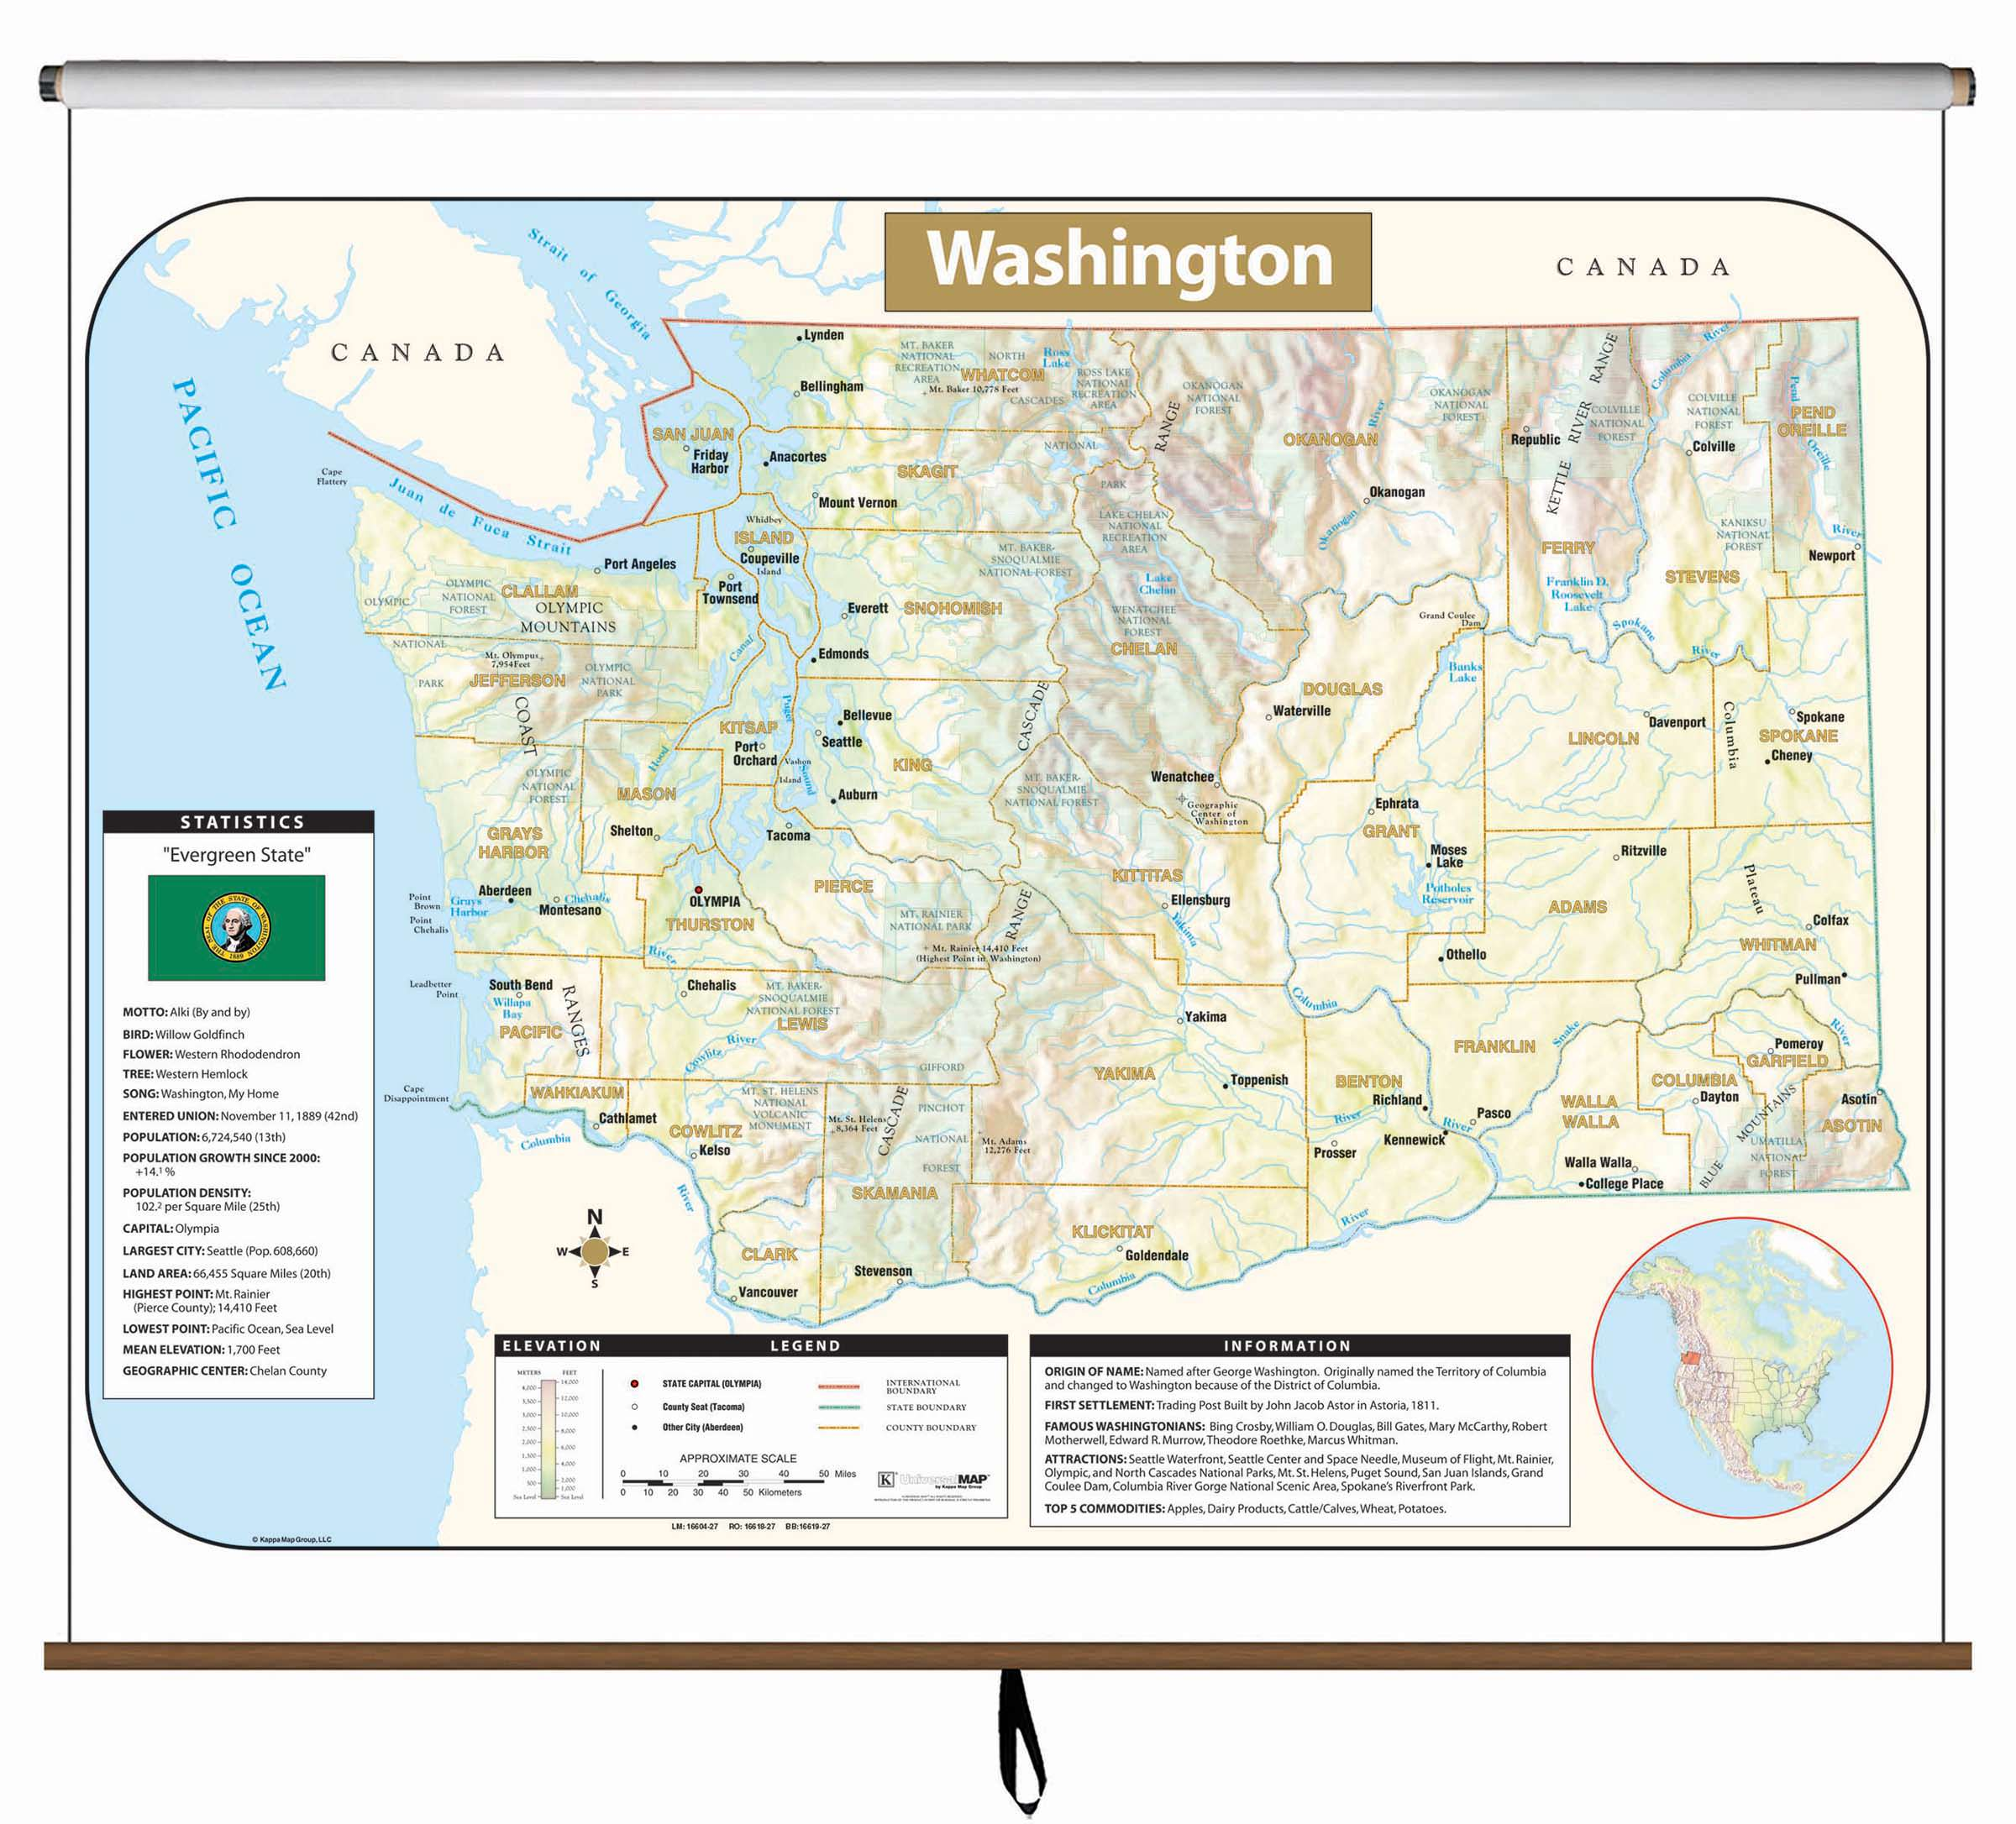 Washington Large Scale Shaded Relief Wall Map on Roller KAPPA MAP